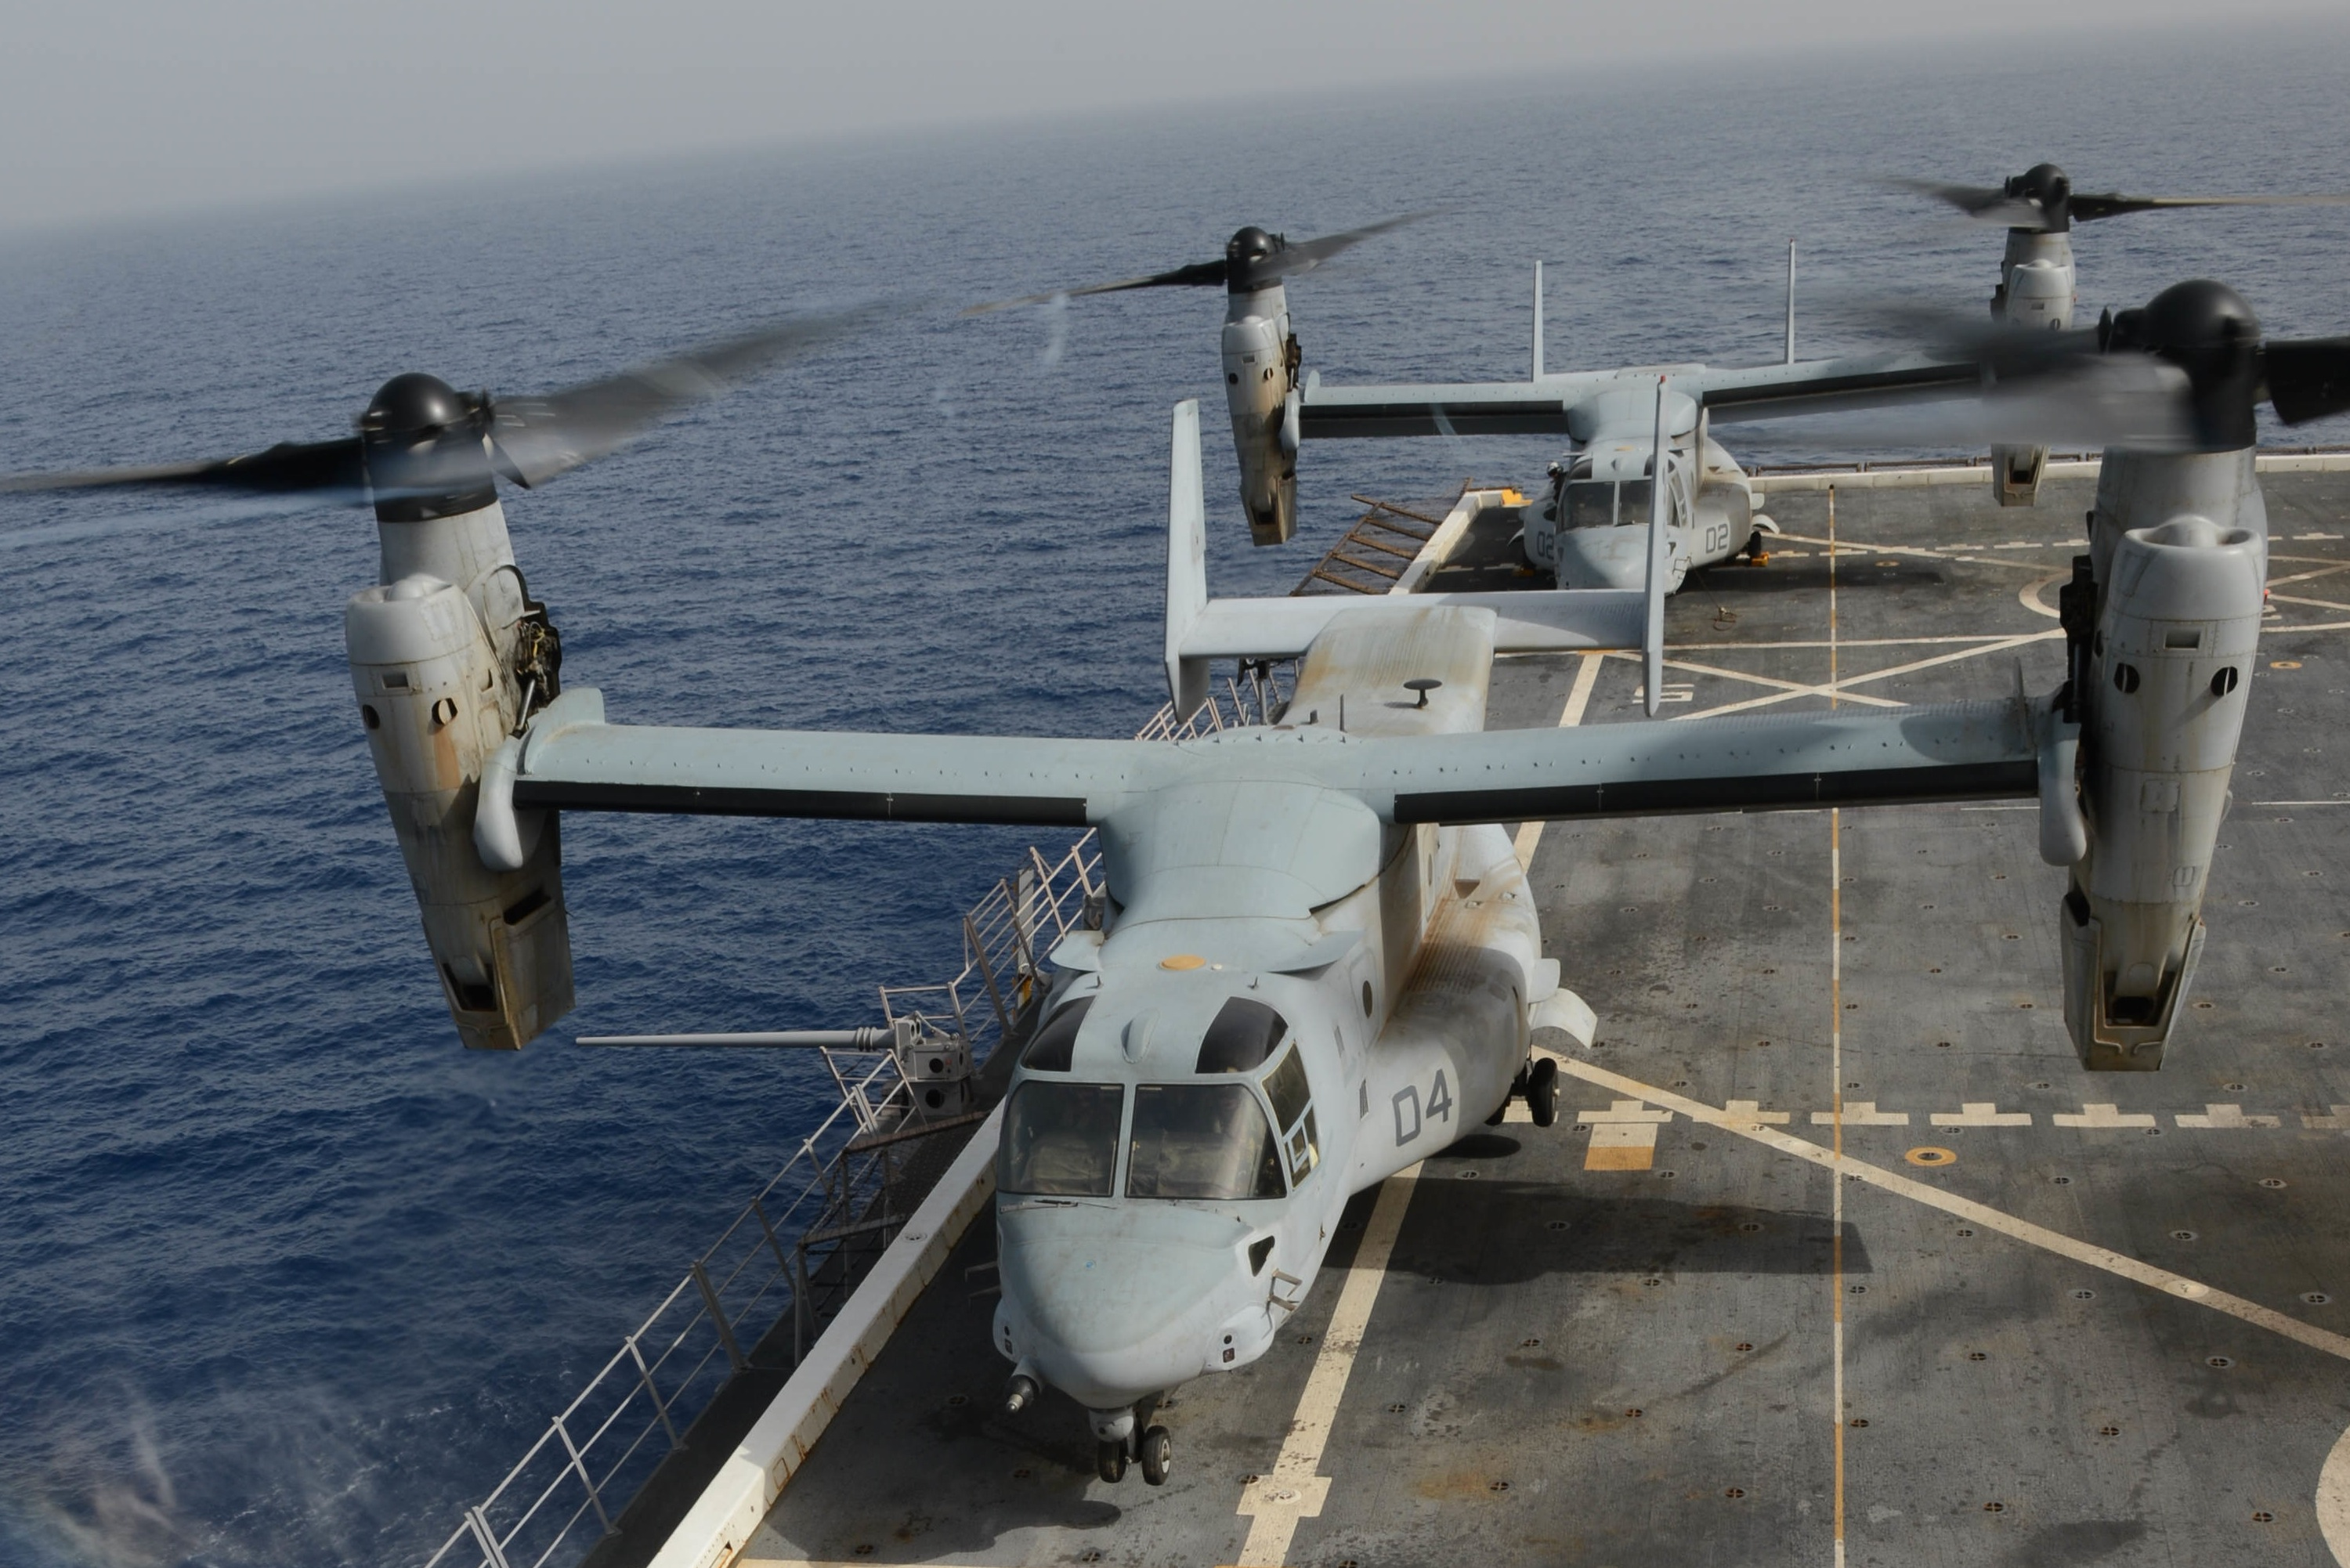 V-22s shown aboard the USS Mesa Verde. The ship sailed into the Persian Gulf on Monday, where its tilt-rotor aircraft could used be used to rescue U.S. diplomats in extremis in Baghdad.